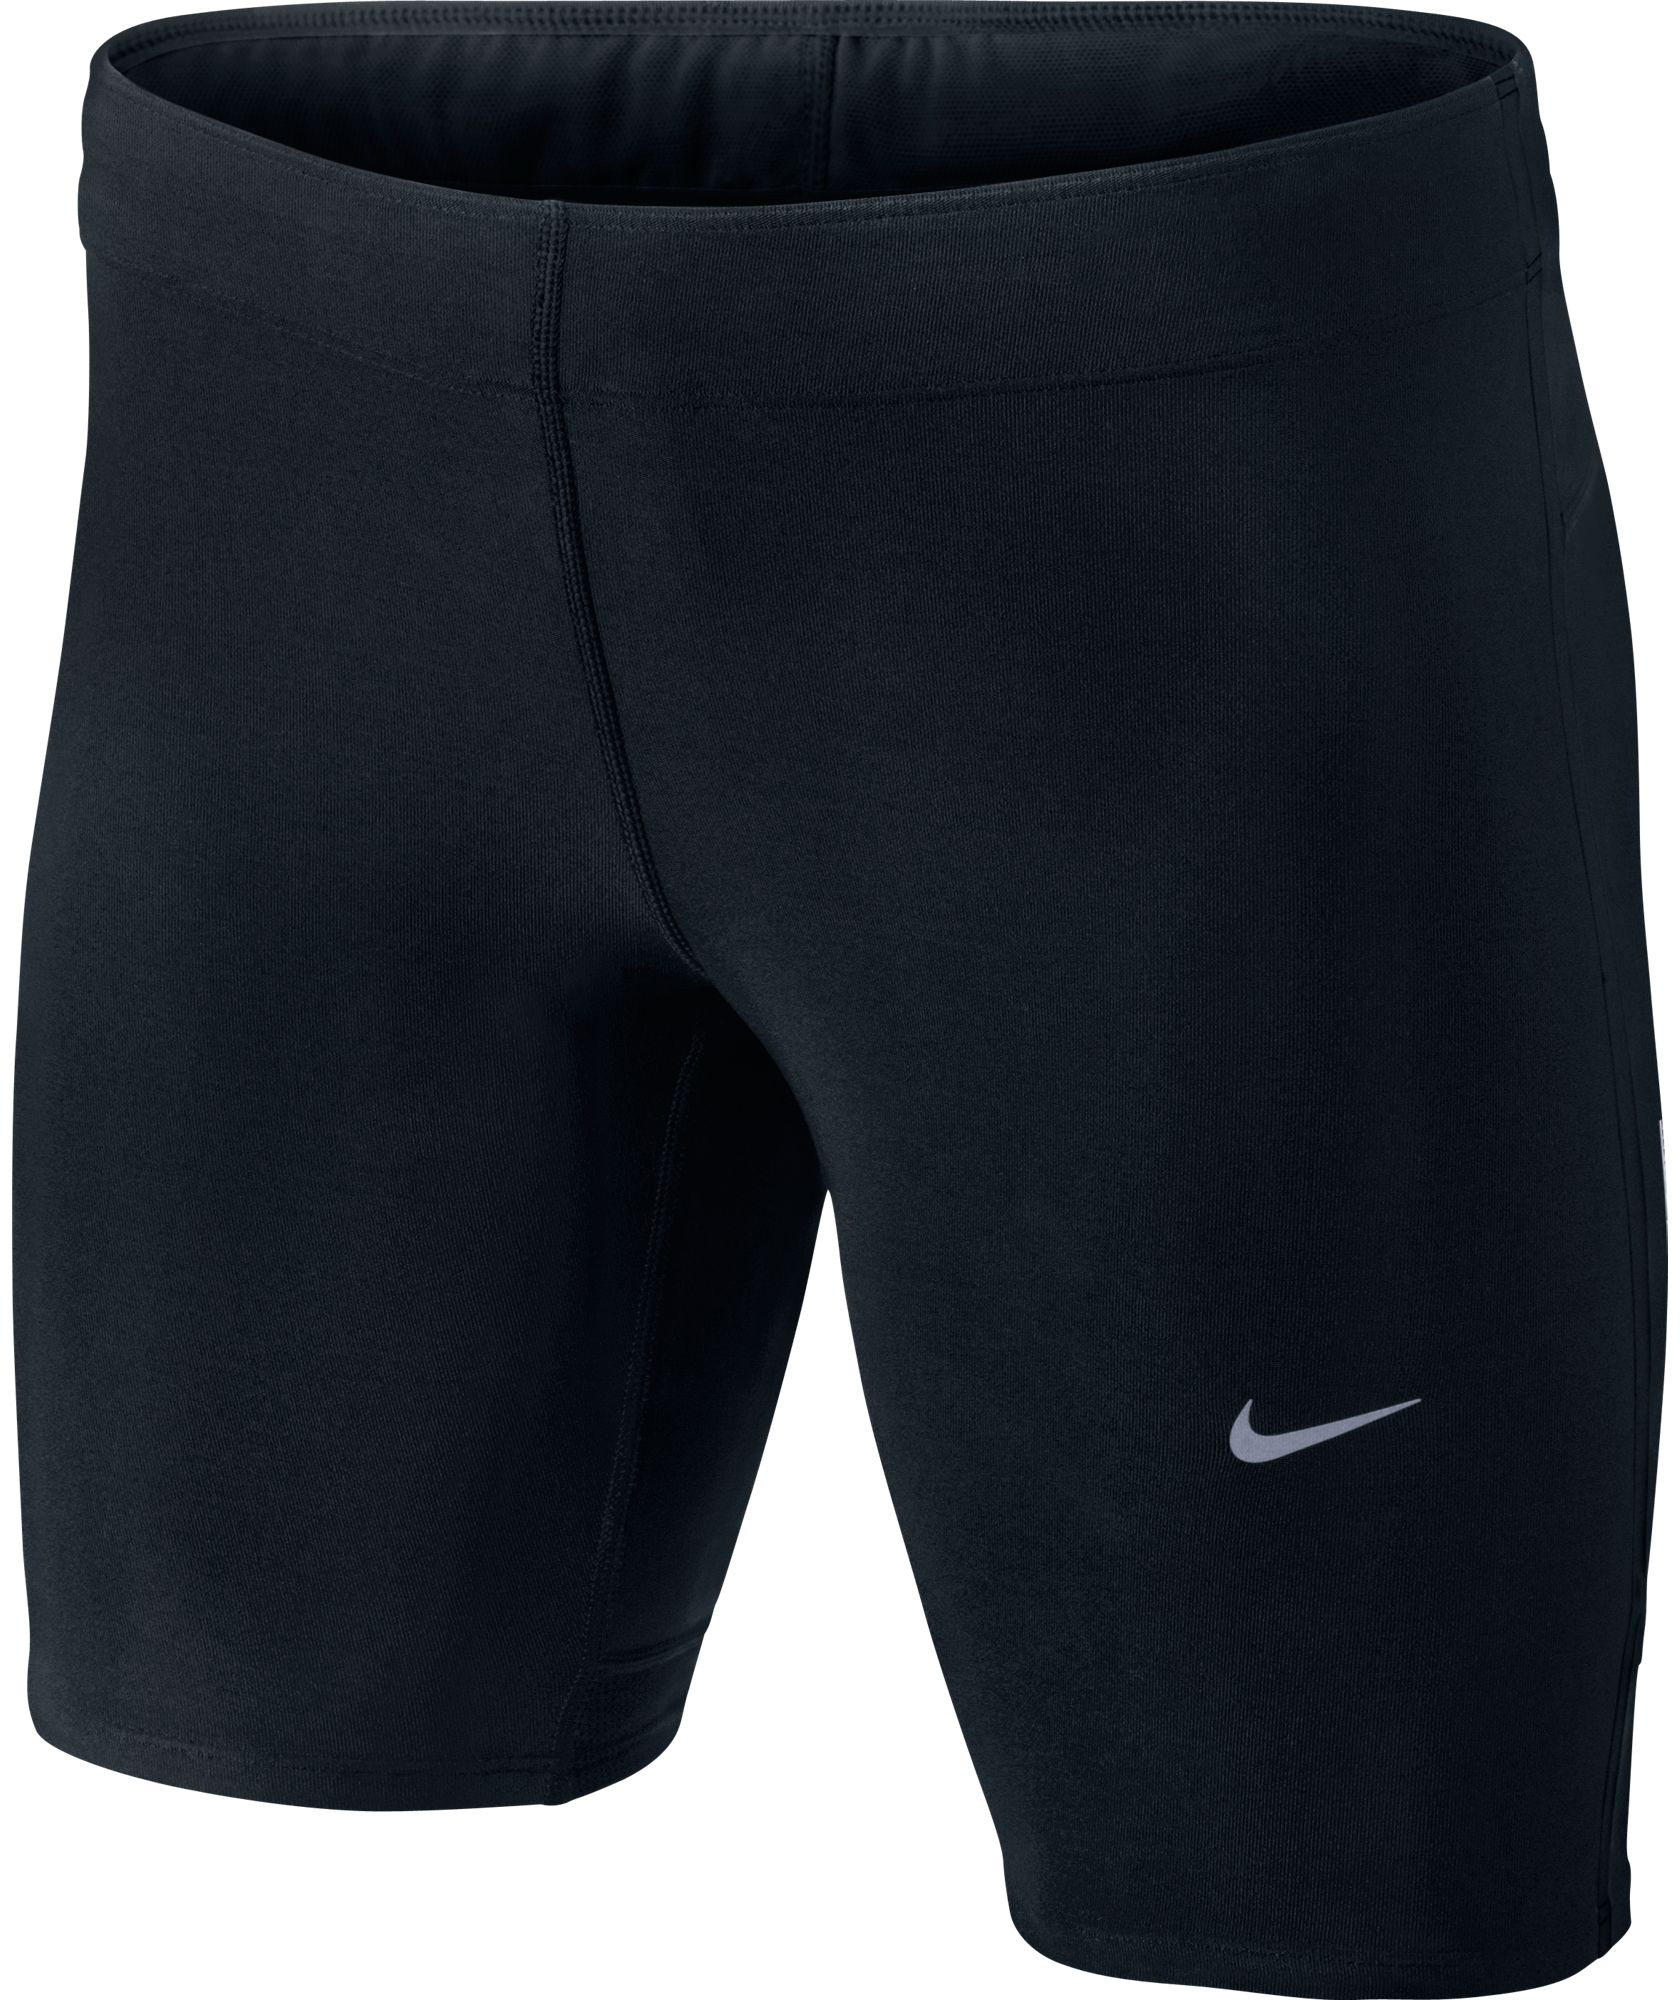 "Nike Women's Tech 2 8"" Short - FA14"